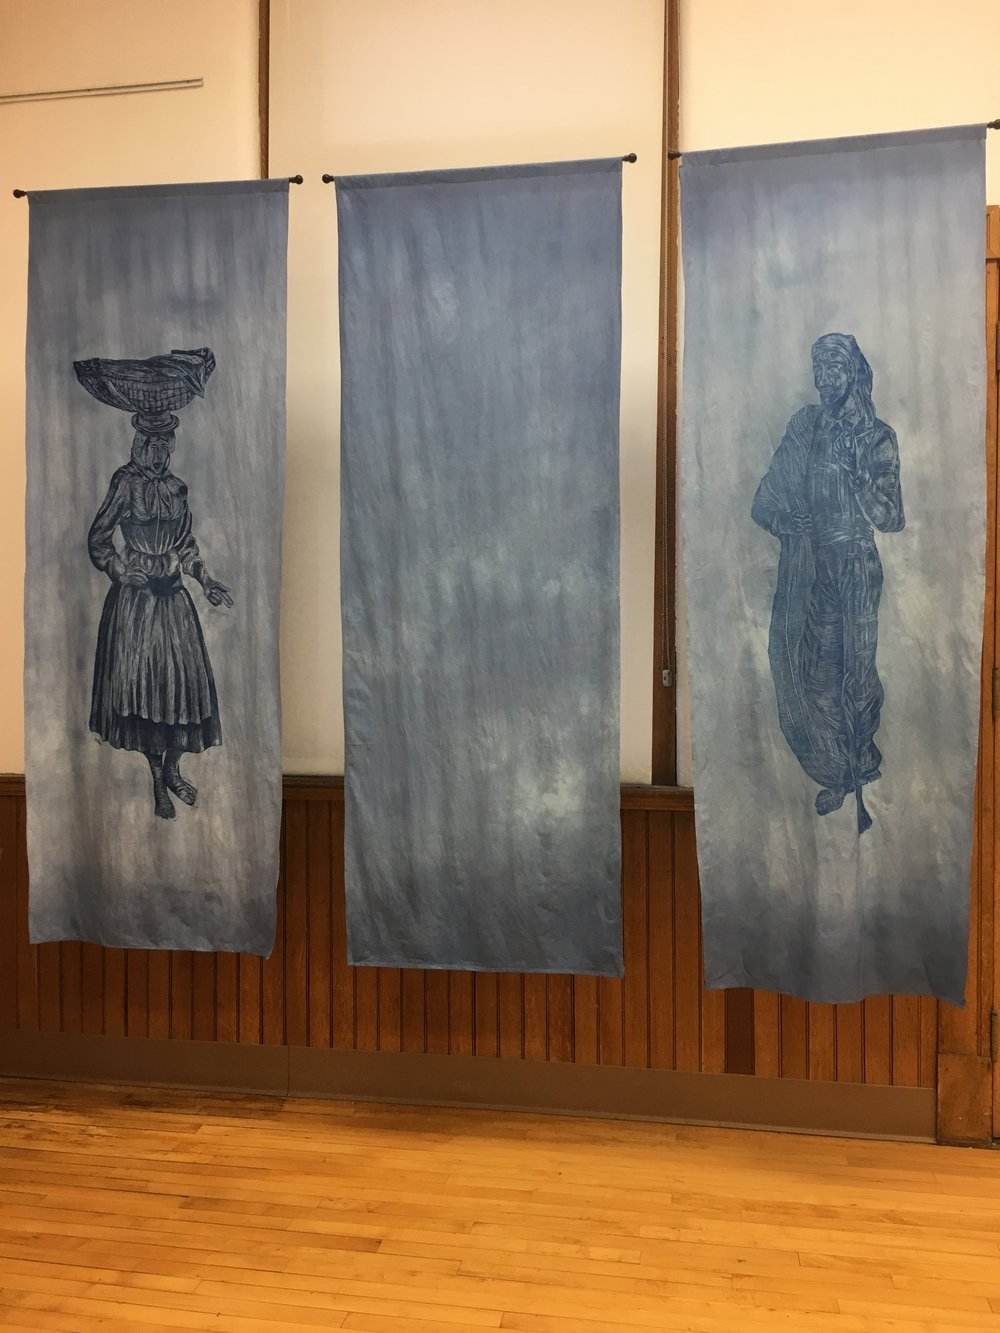 Varina, Peixinhos,  and  Pescador,  Gabriella Sapata. Woodcut on muslin and animation. Image courtesy of Lauren Darpel.